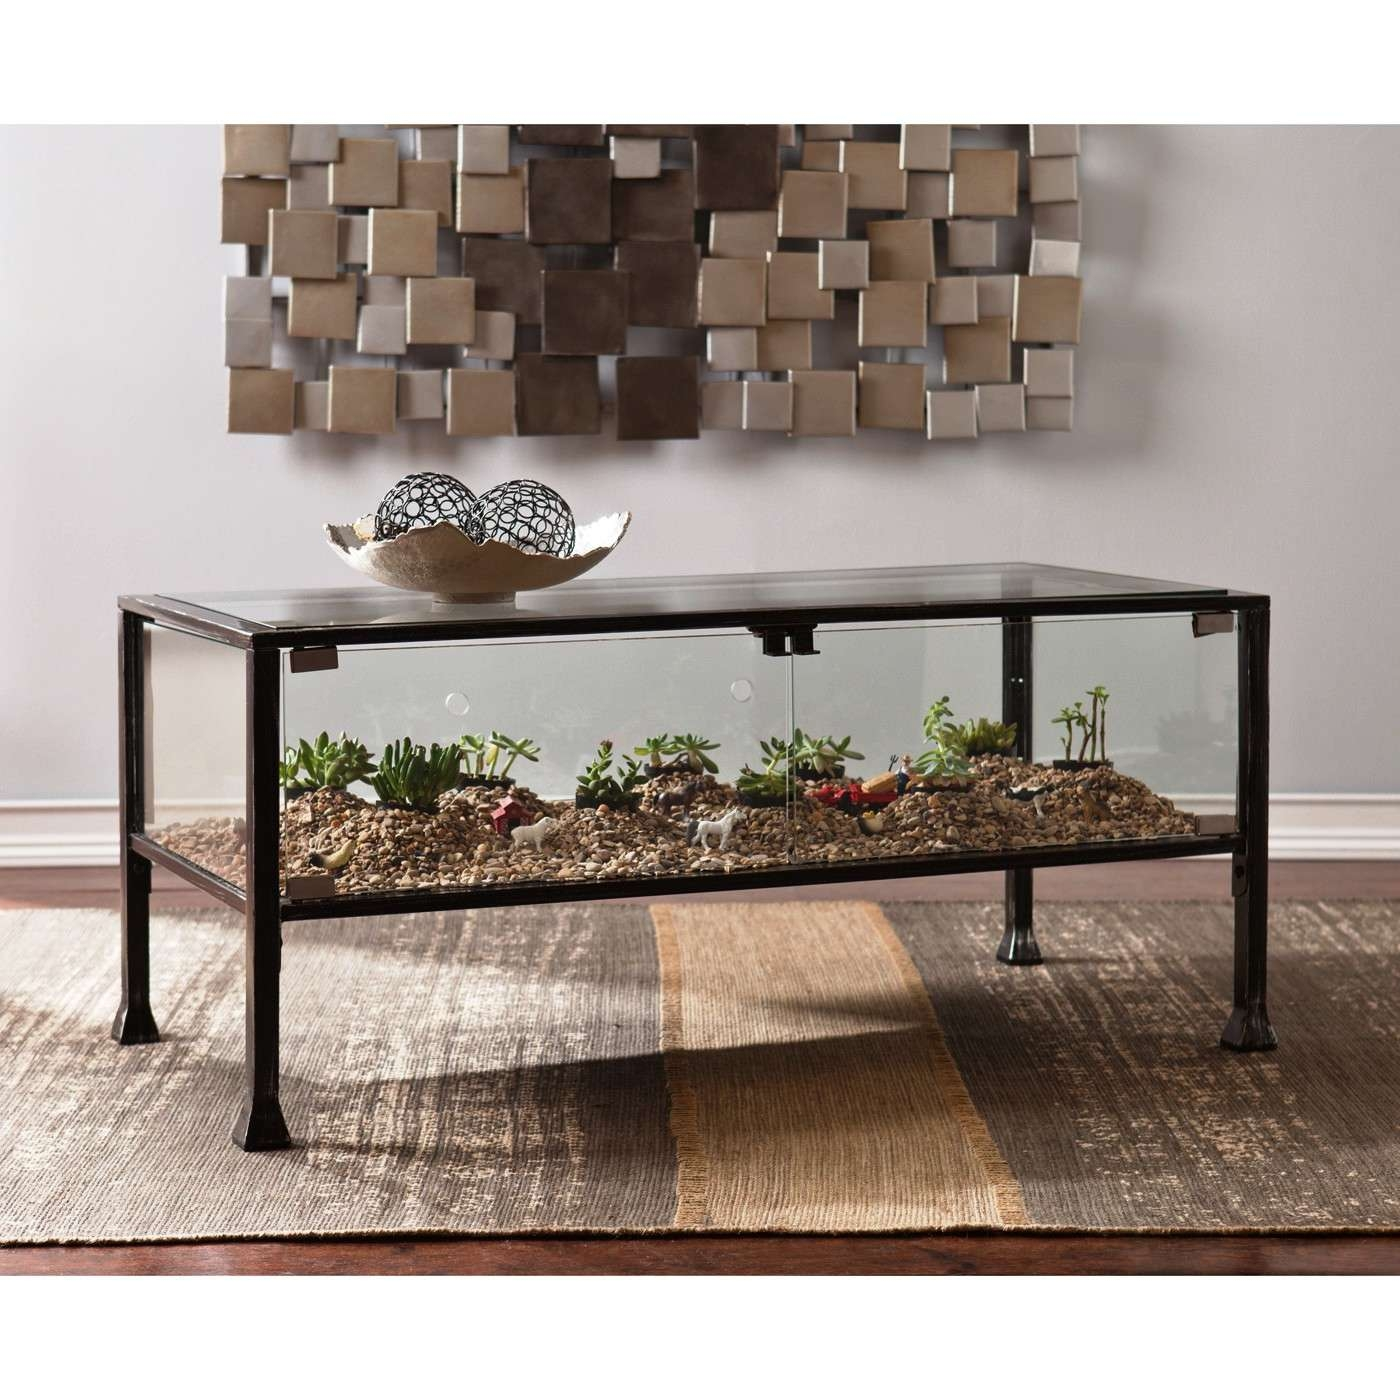 Coffee Tables : Stylish Dark Tempered Oval Glass Coffee Table Inside Well Liked Floating Glass Coffee Tables (View 15 of 20)